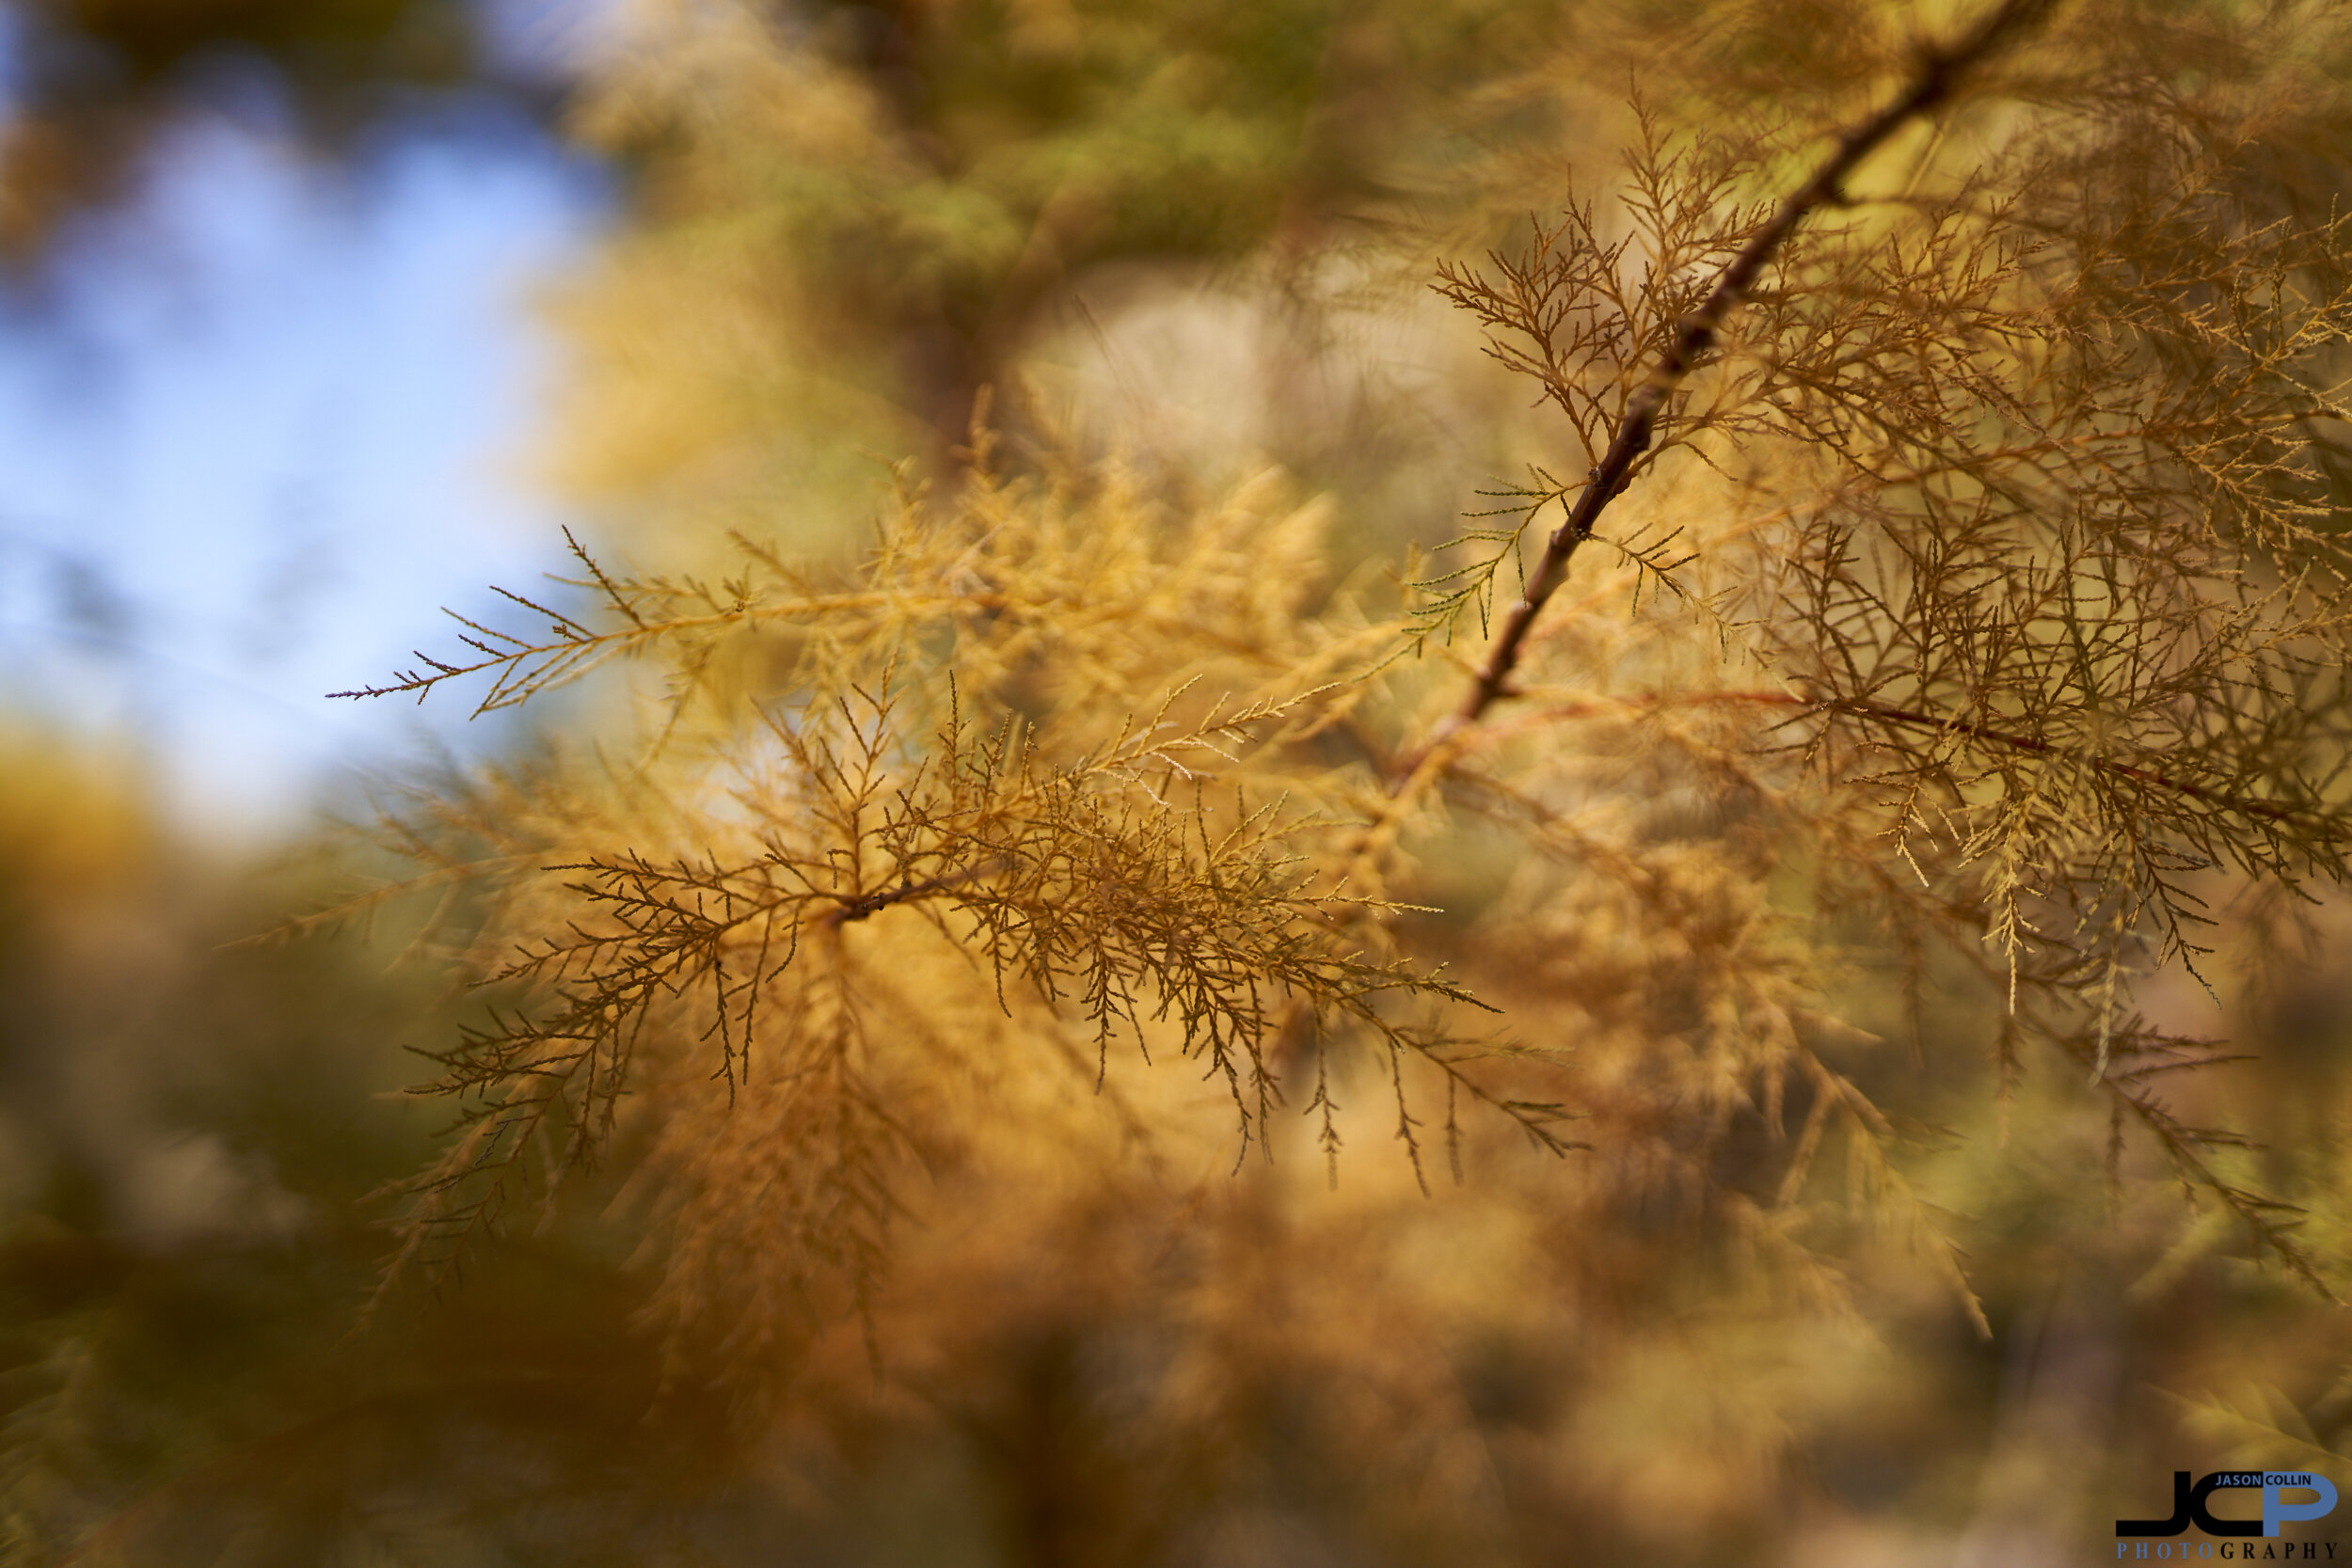 Shallow depth of field can create a different world of color and focus in autumn